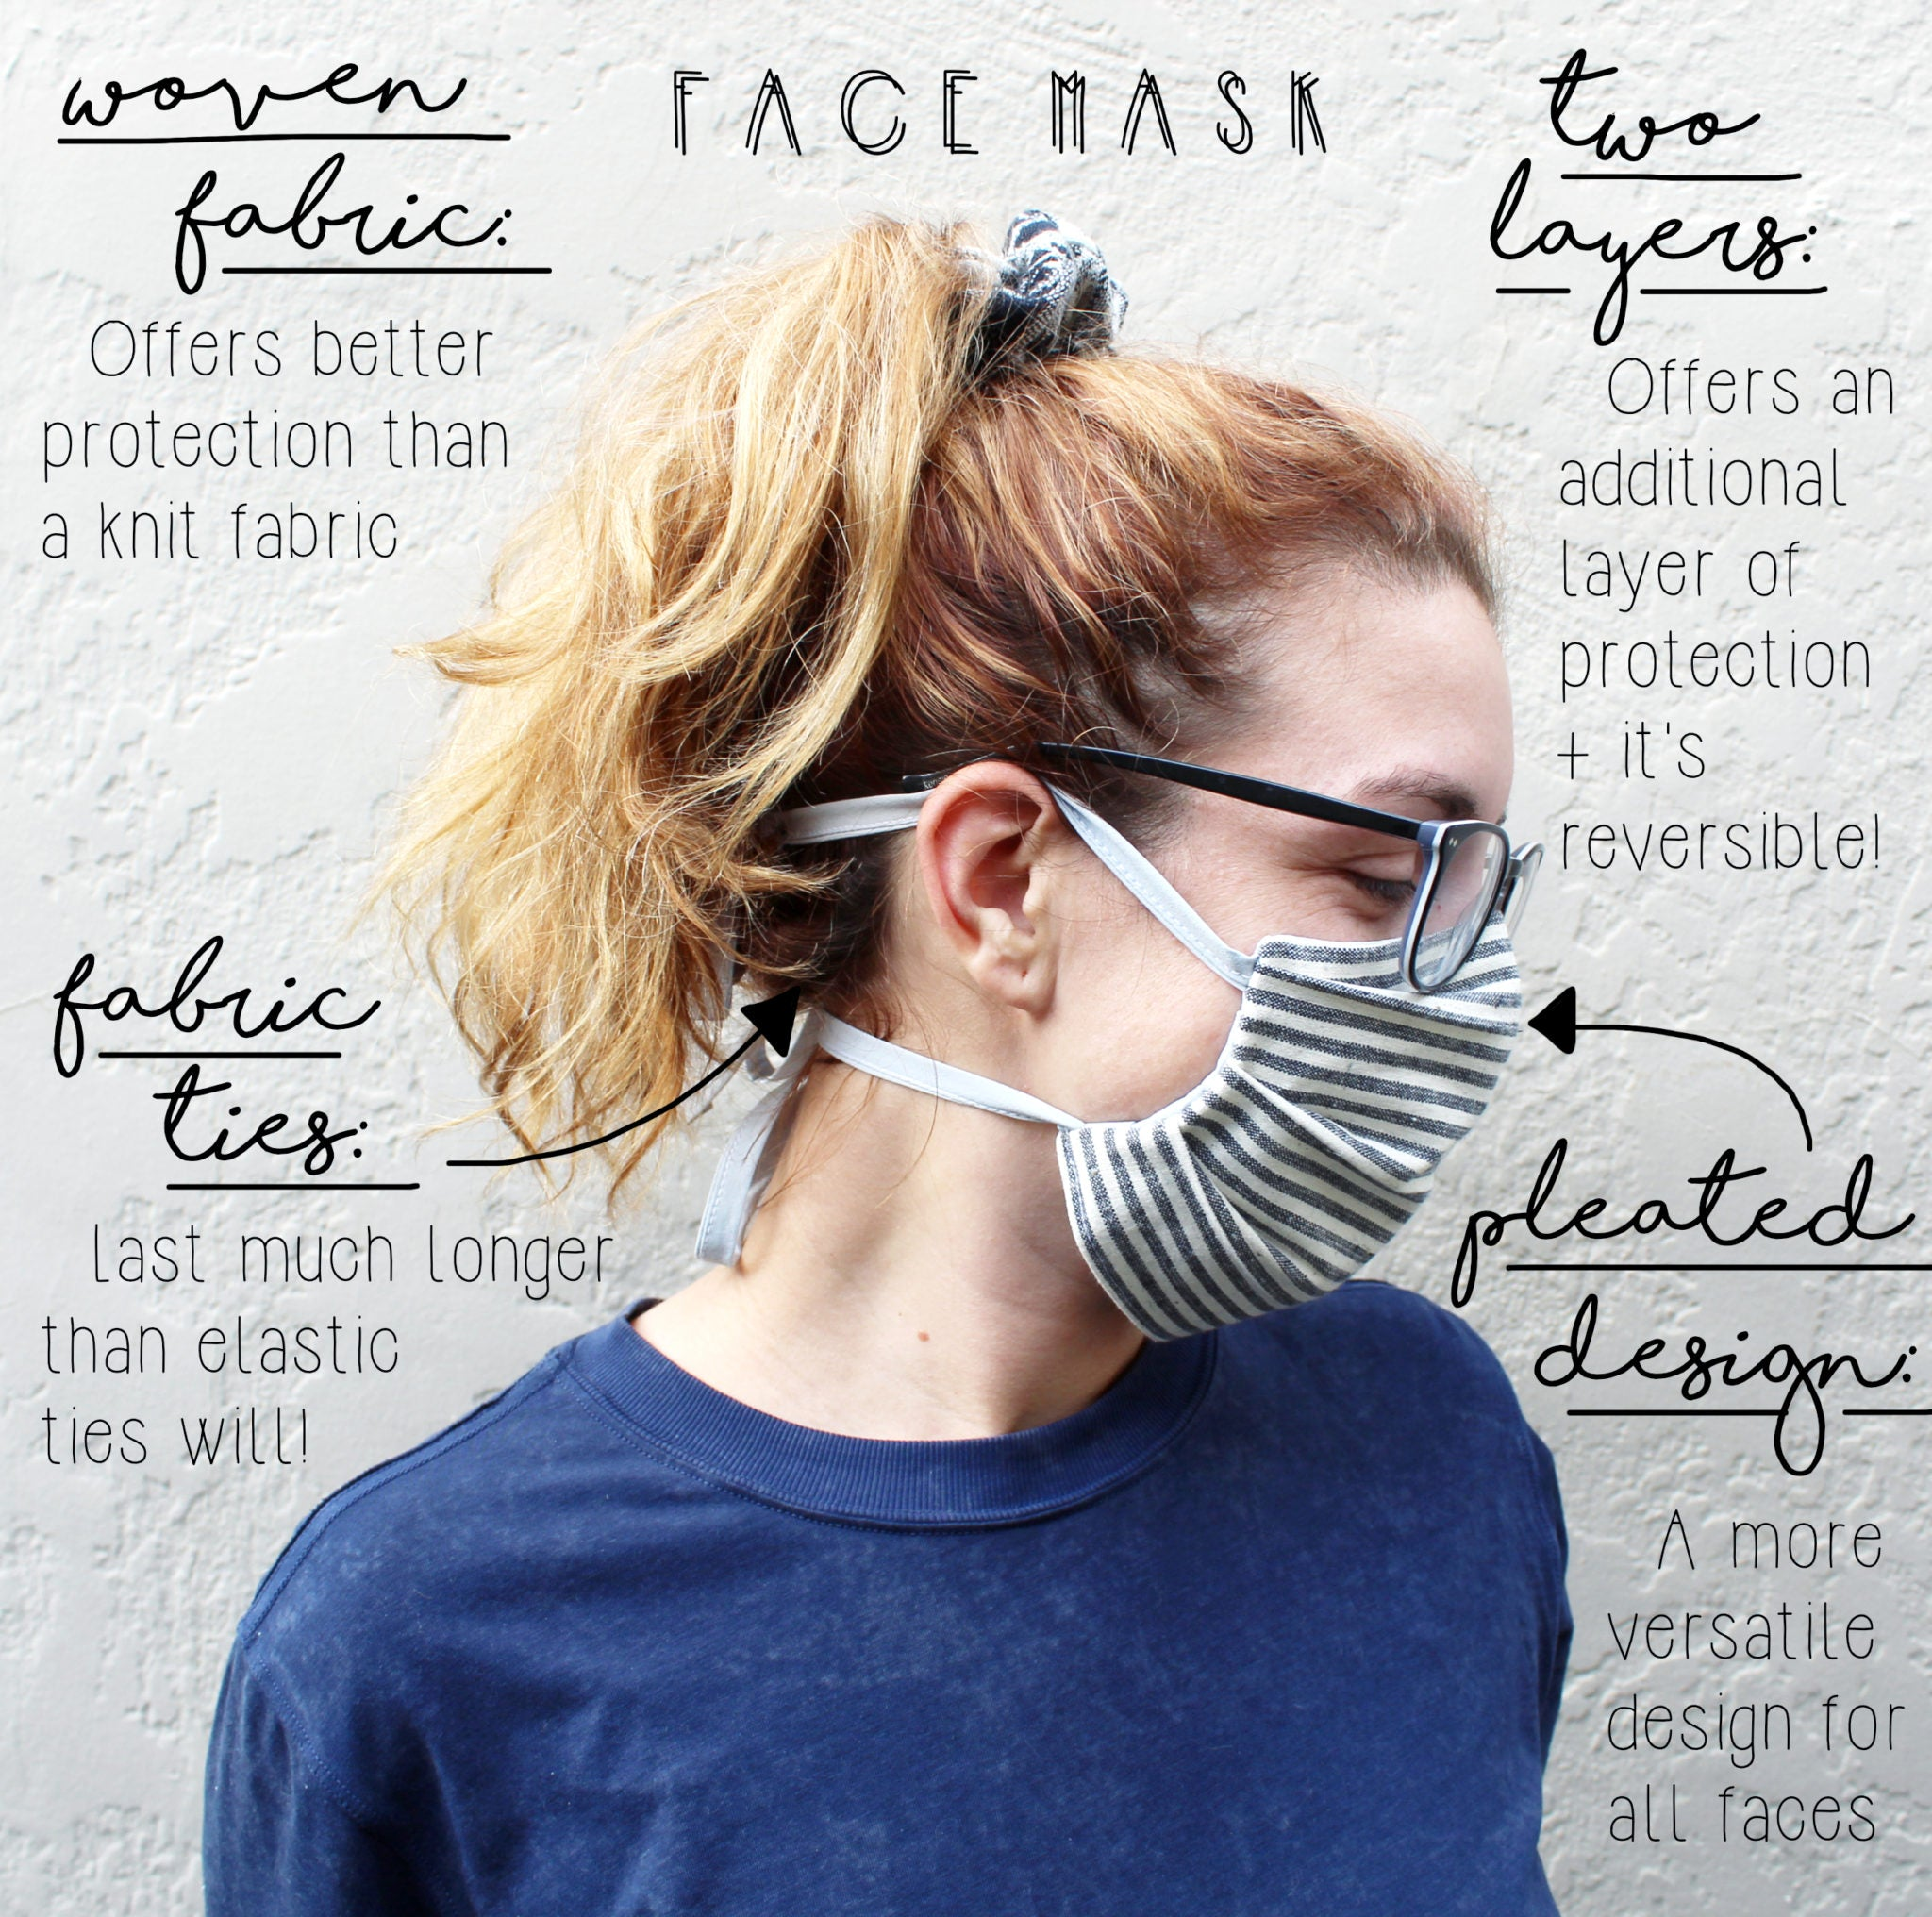 How To Make A Face Mask DIY Sewing Tutorial: Side View